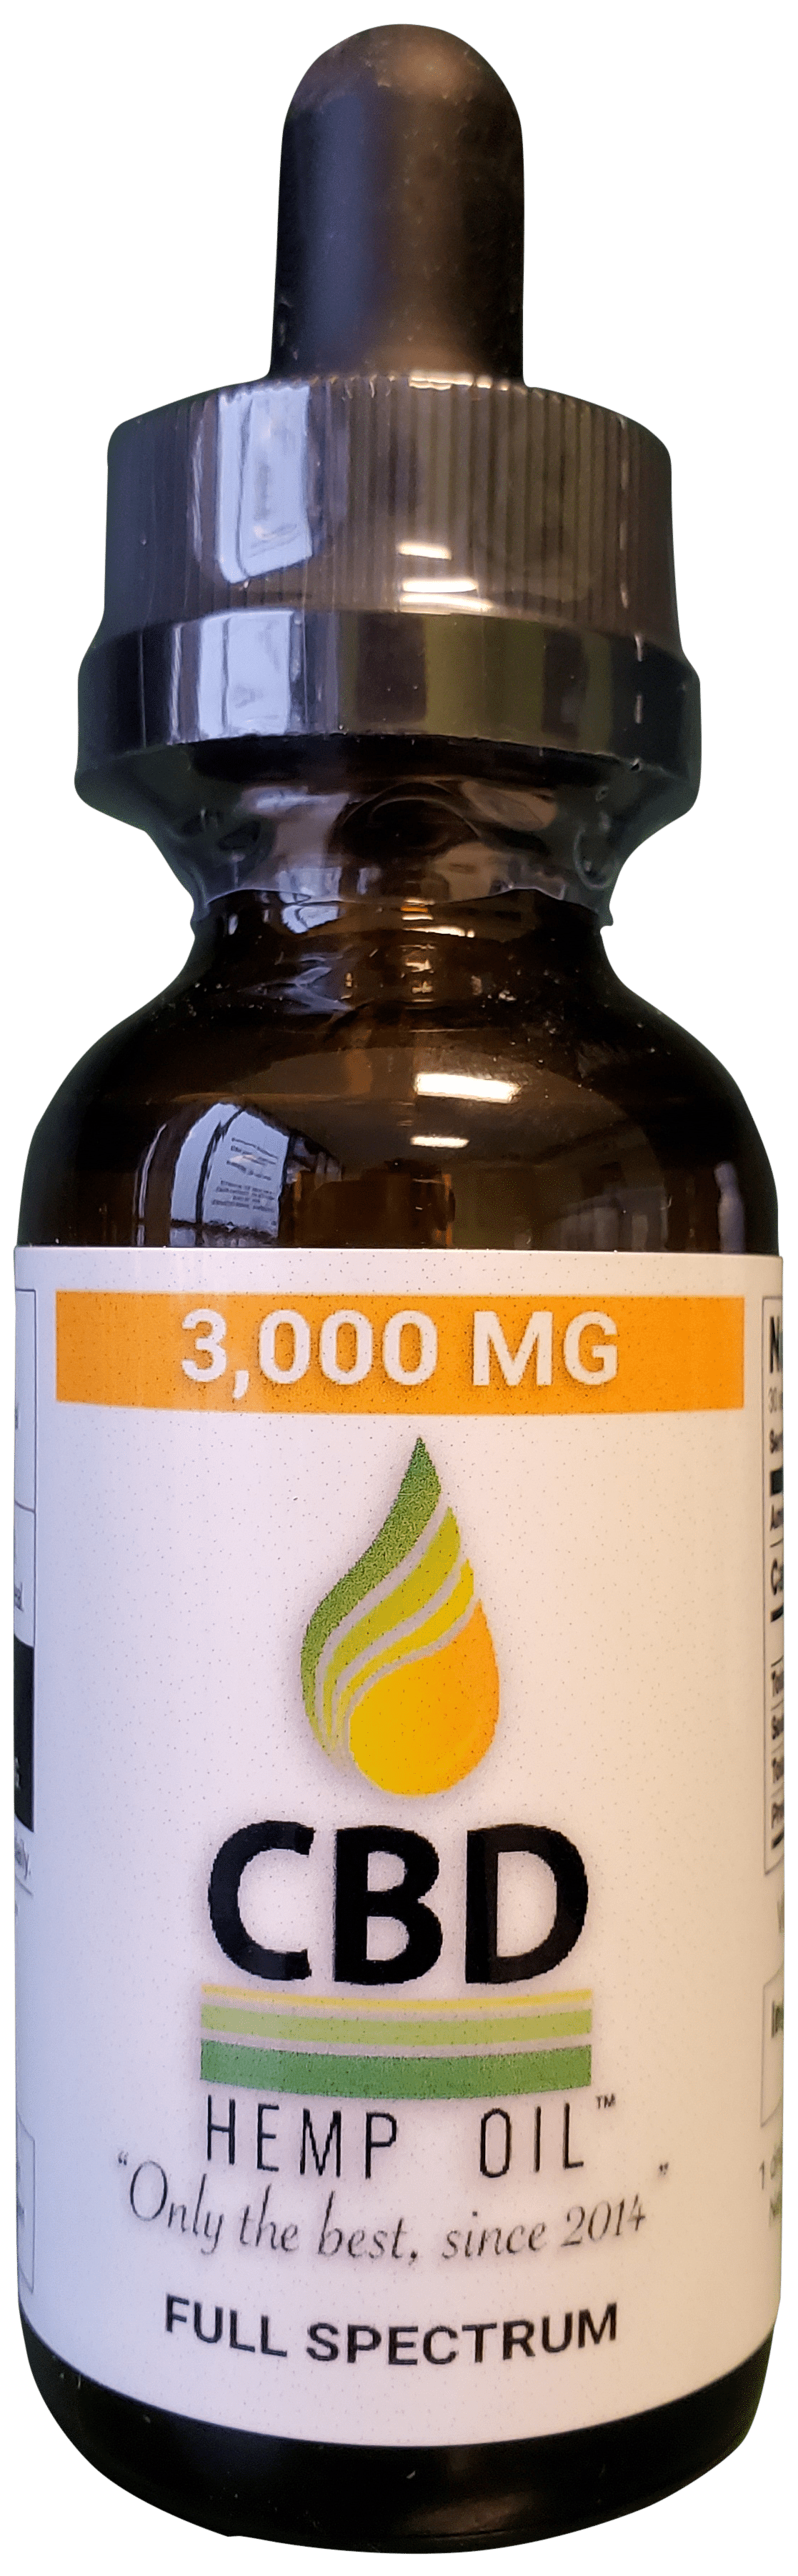 CBD Hemp Oil Dayton 3,000 mg